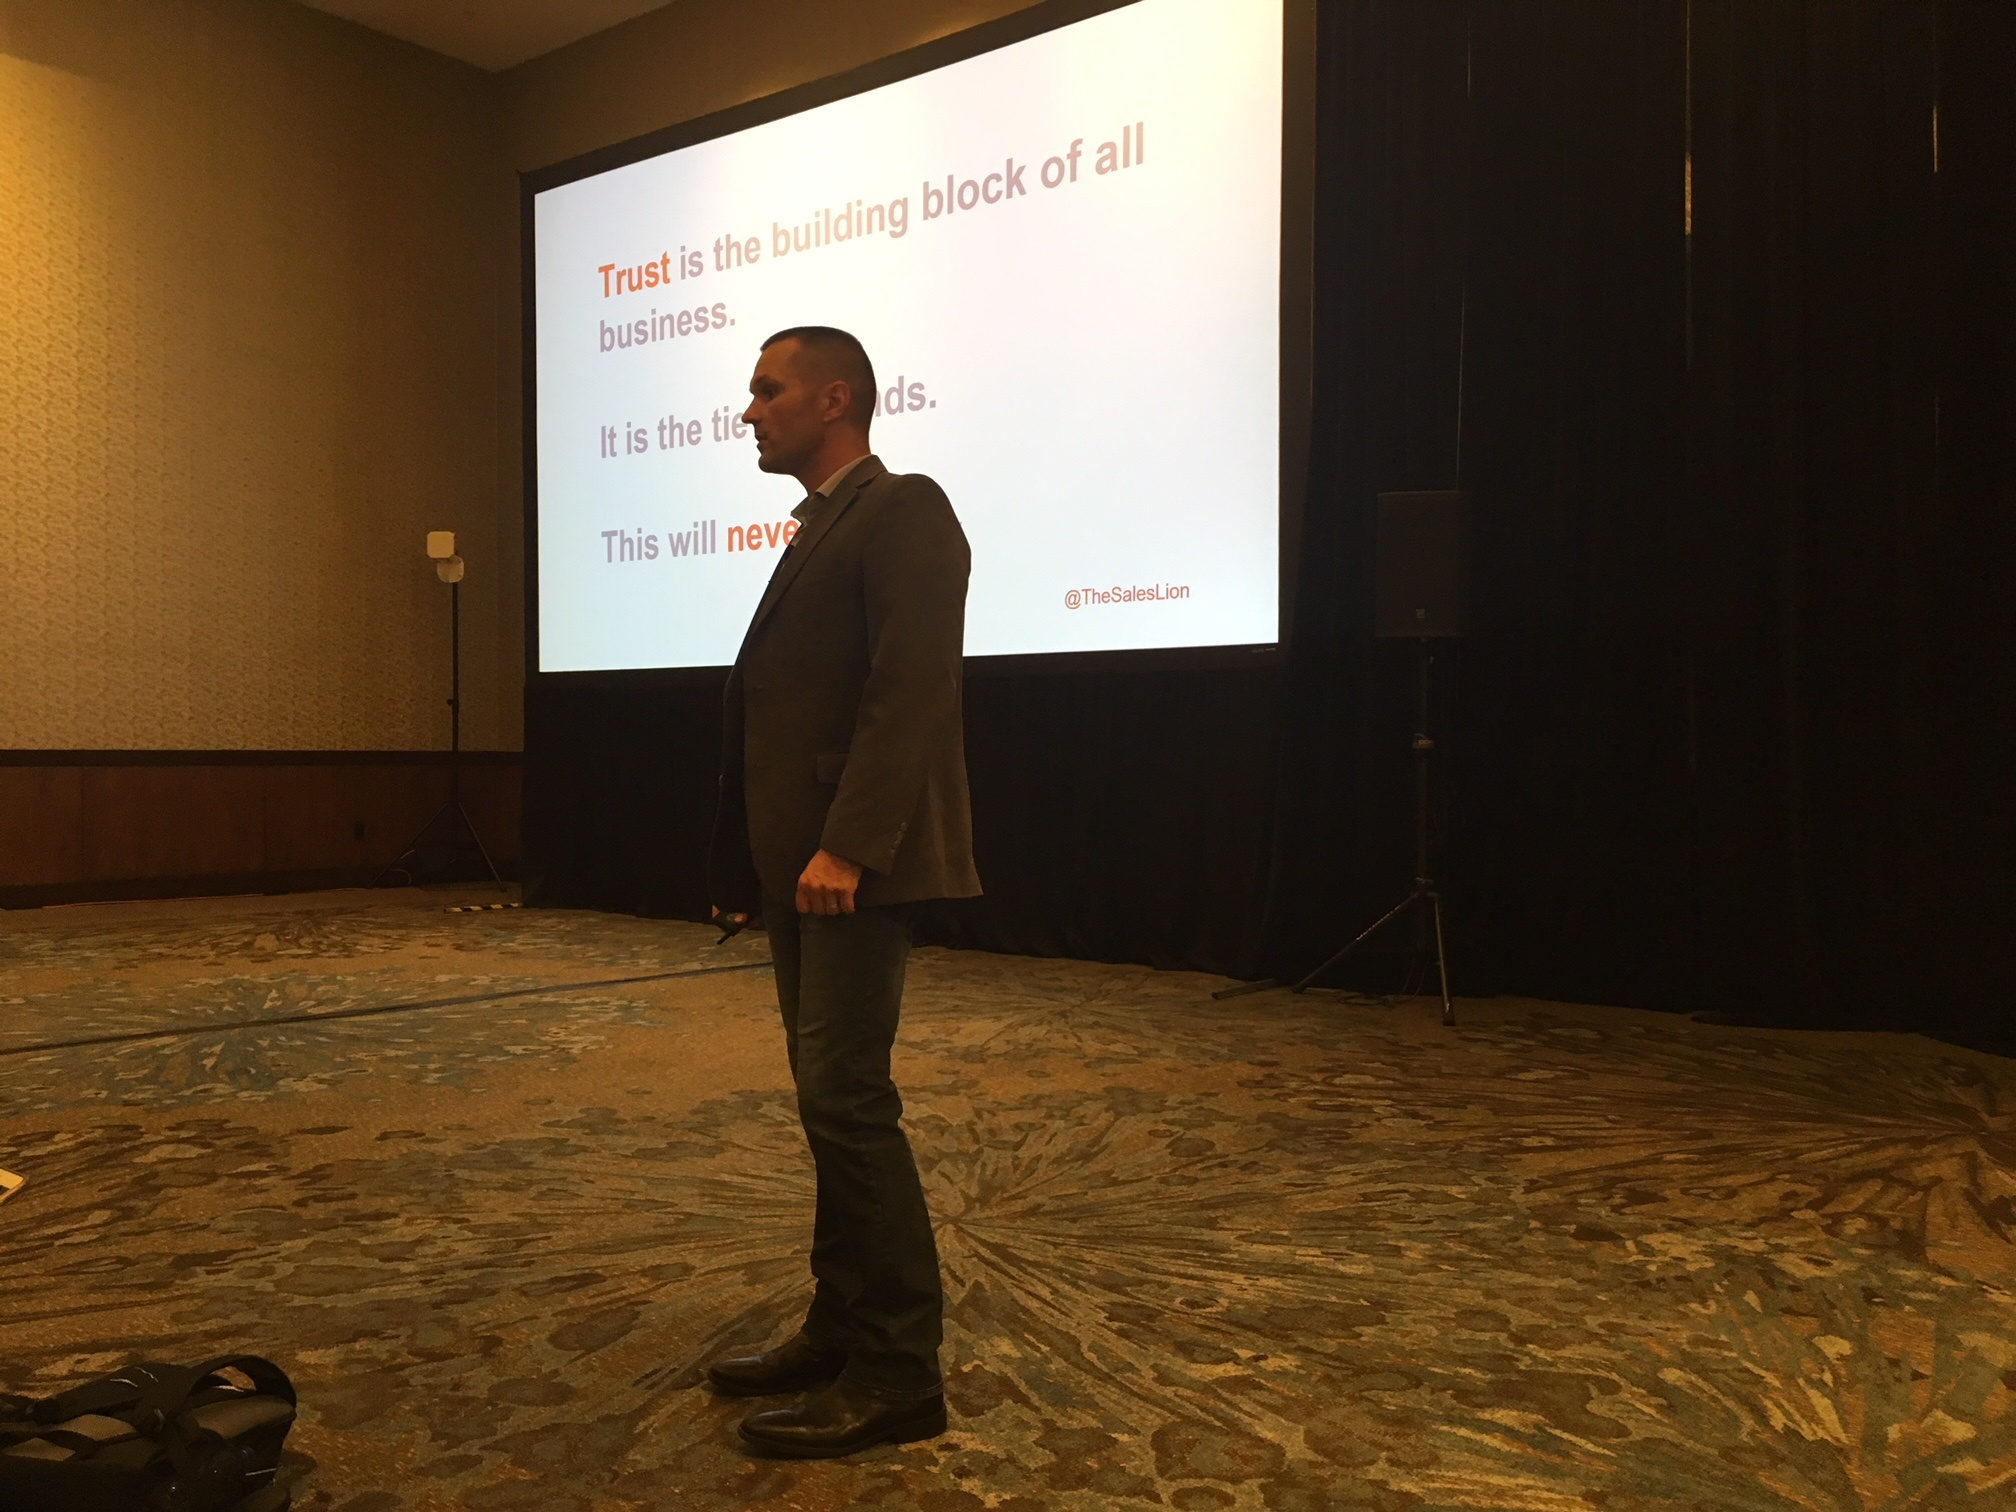 #INBOUND18: 7 Steps To Creating Content To Move The Sales And Marketing Needle